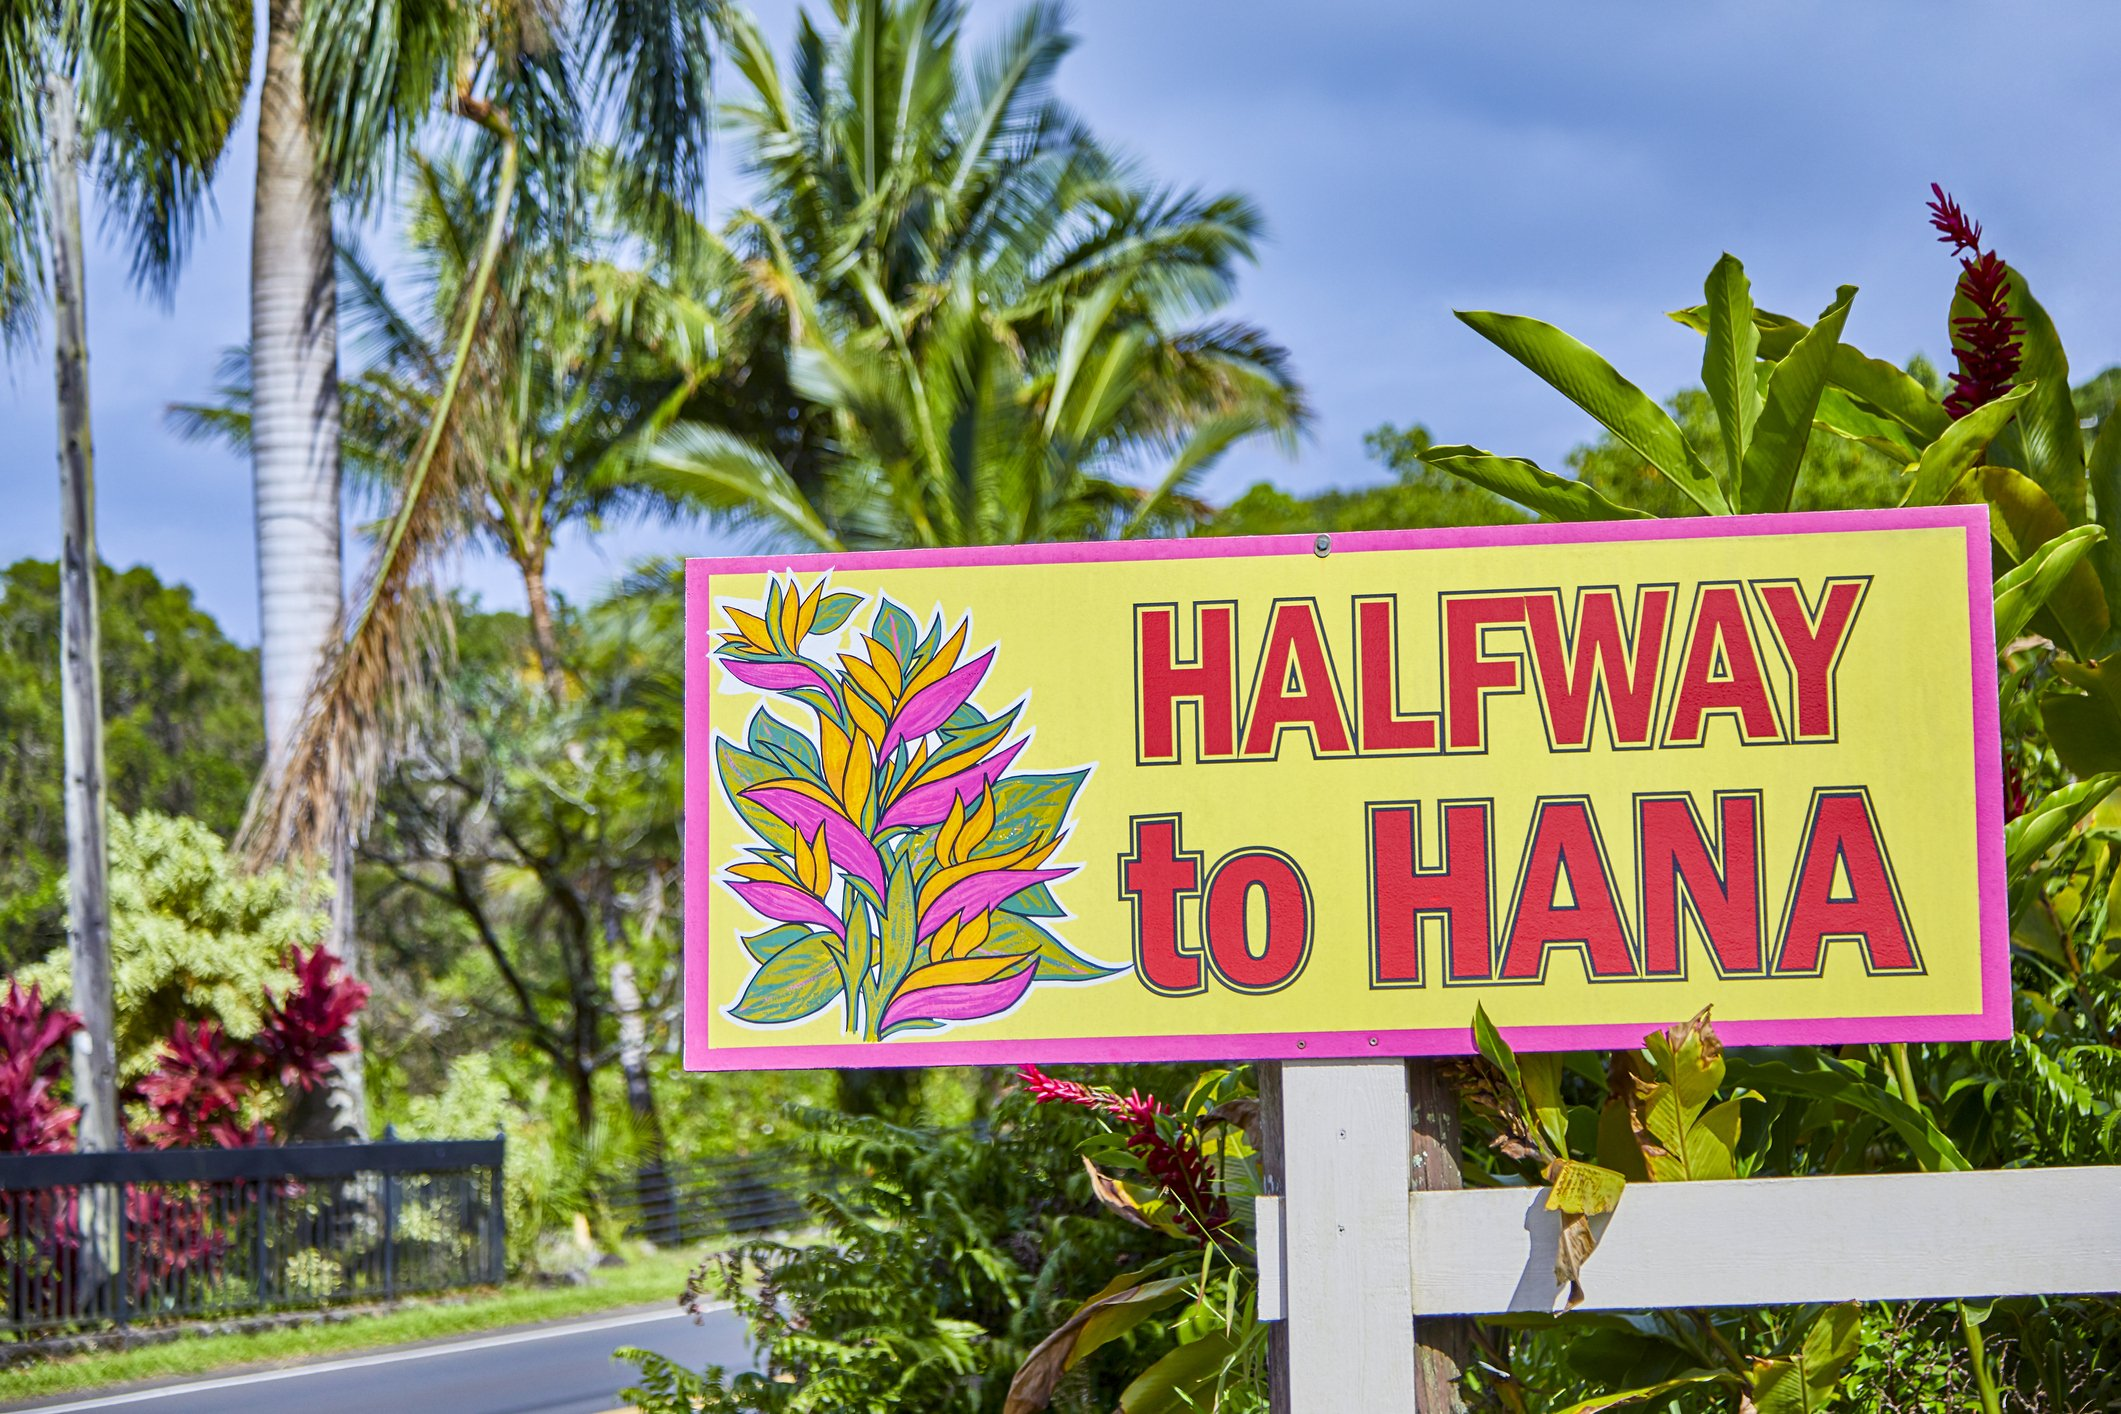 Slide 12 of 51: Hawaii is the only state that doesn't have an official state sign, but there are signs for various cities throughout the islands such as this one in Maui. Take a look at the literal translation of every state name.